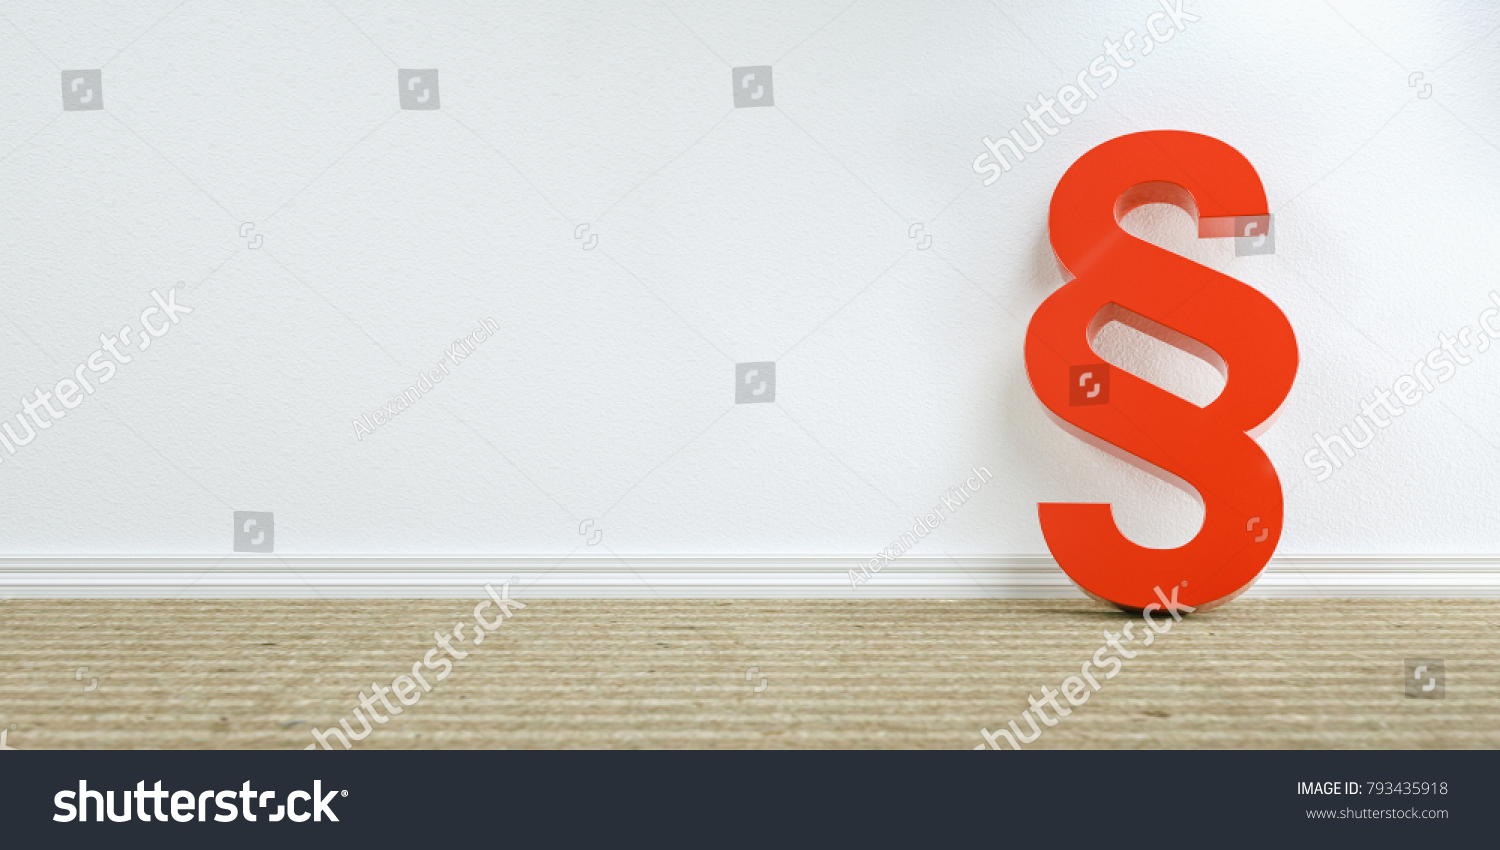 Symbol for micrometers image collections symbol and sign ideas symbol of section image collections symbol and sign ideas section sign symbol images symbol and sign biocorpaavc